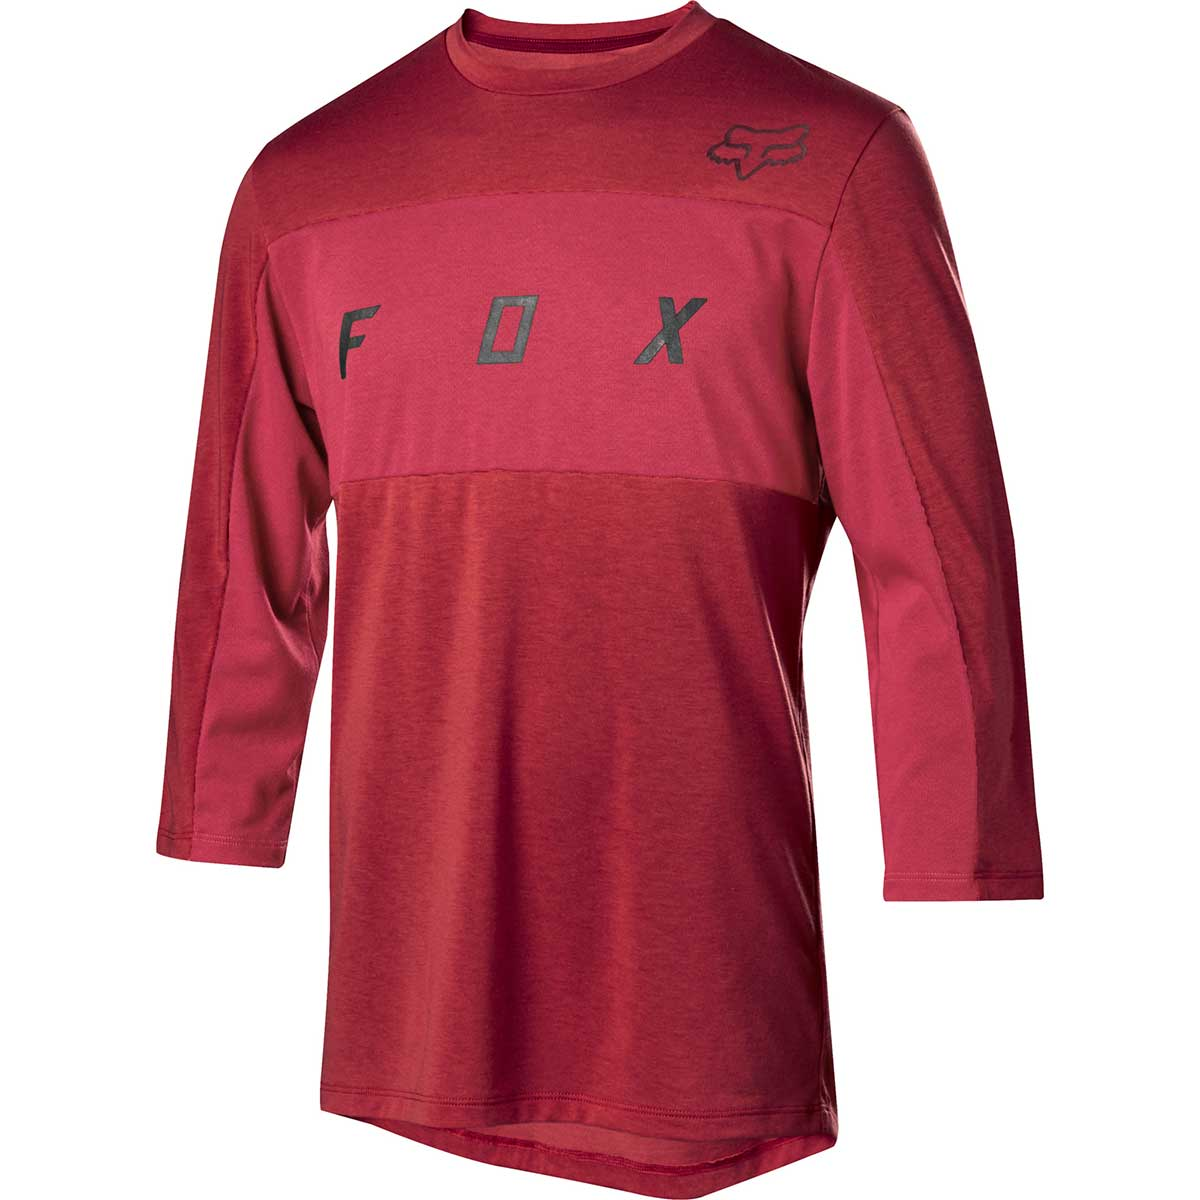 Fox men's Ranger drirelease 3/4 bike jersey in Cardinal